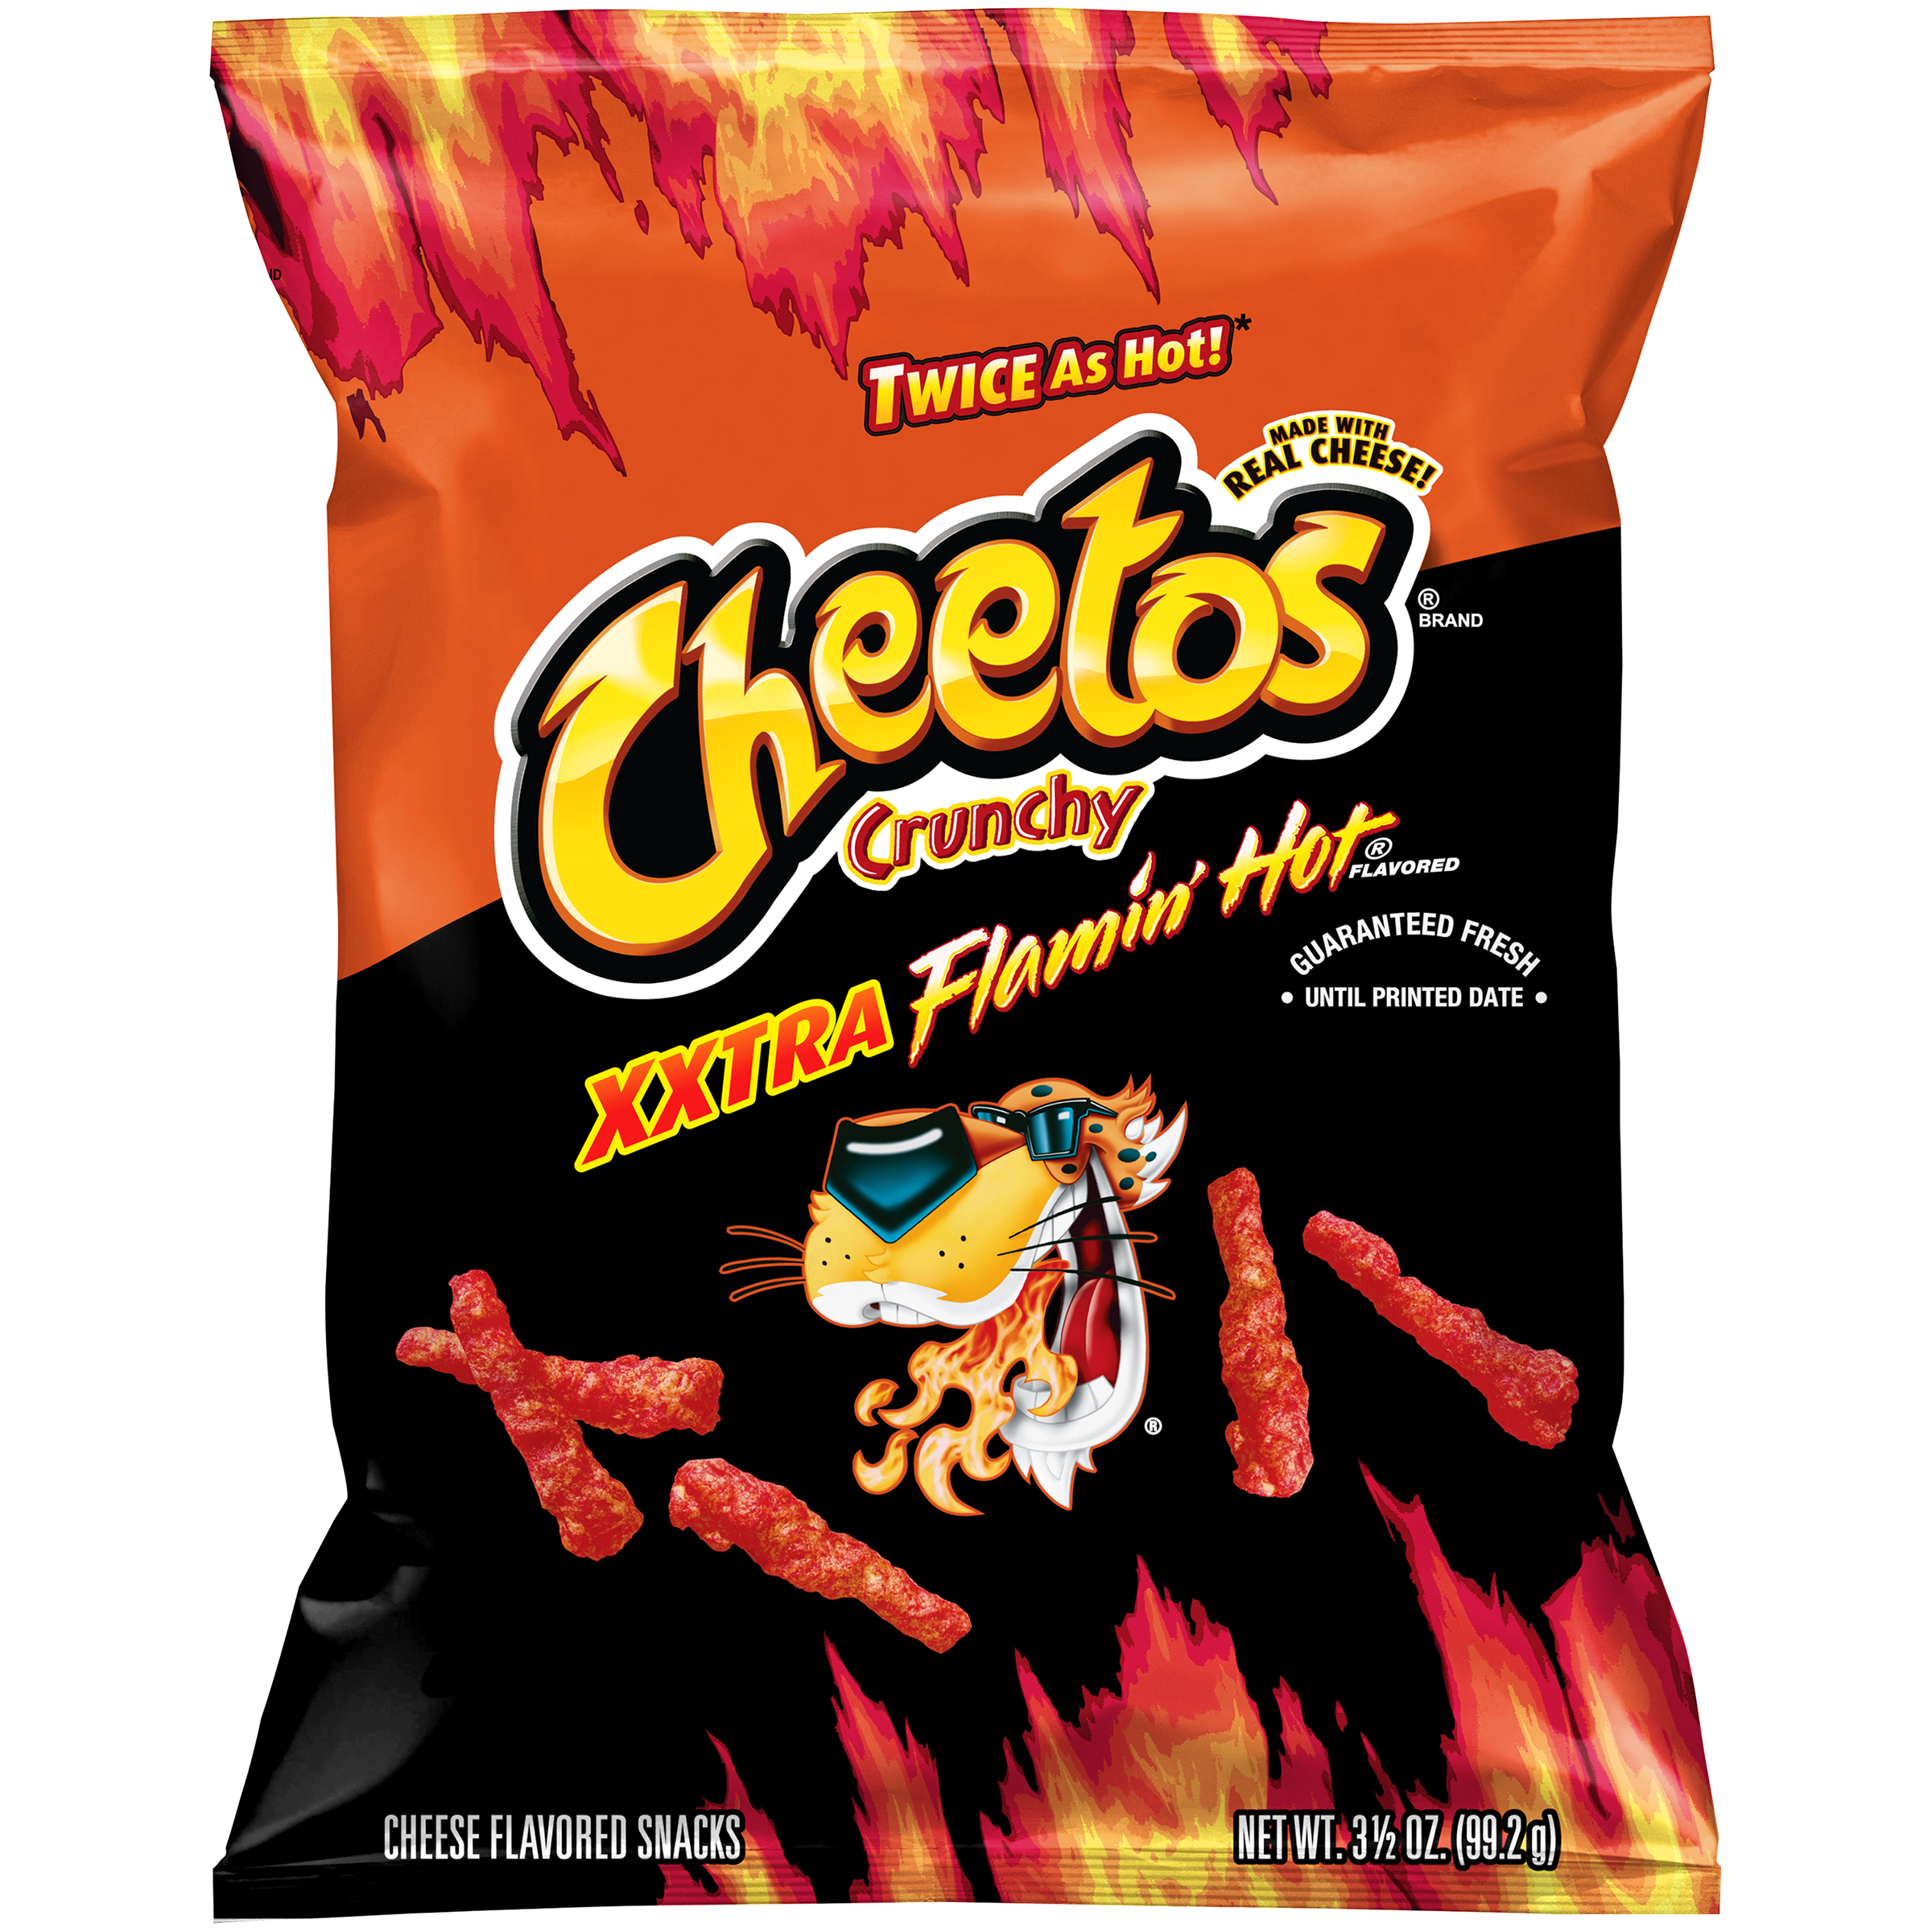 Cheetos Crunchy Xxtra Flamin' Hot Cheese Flavored Snacks 3.5 oz. Bag